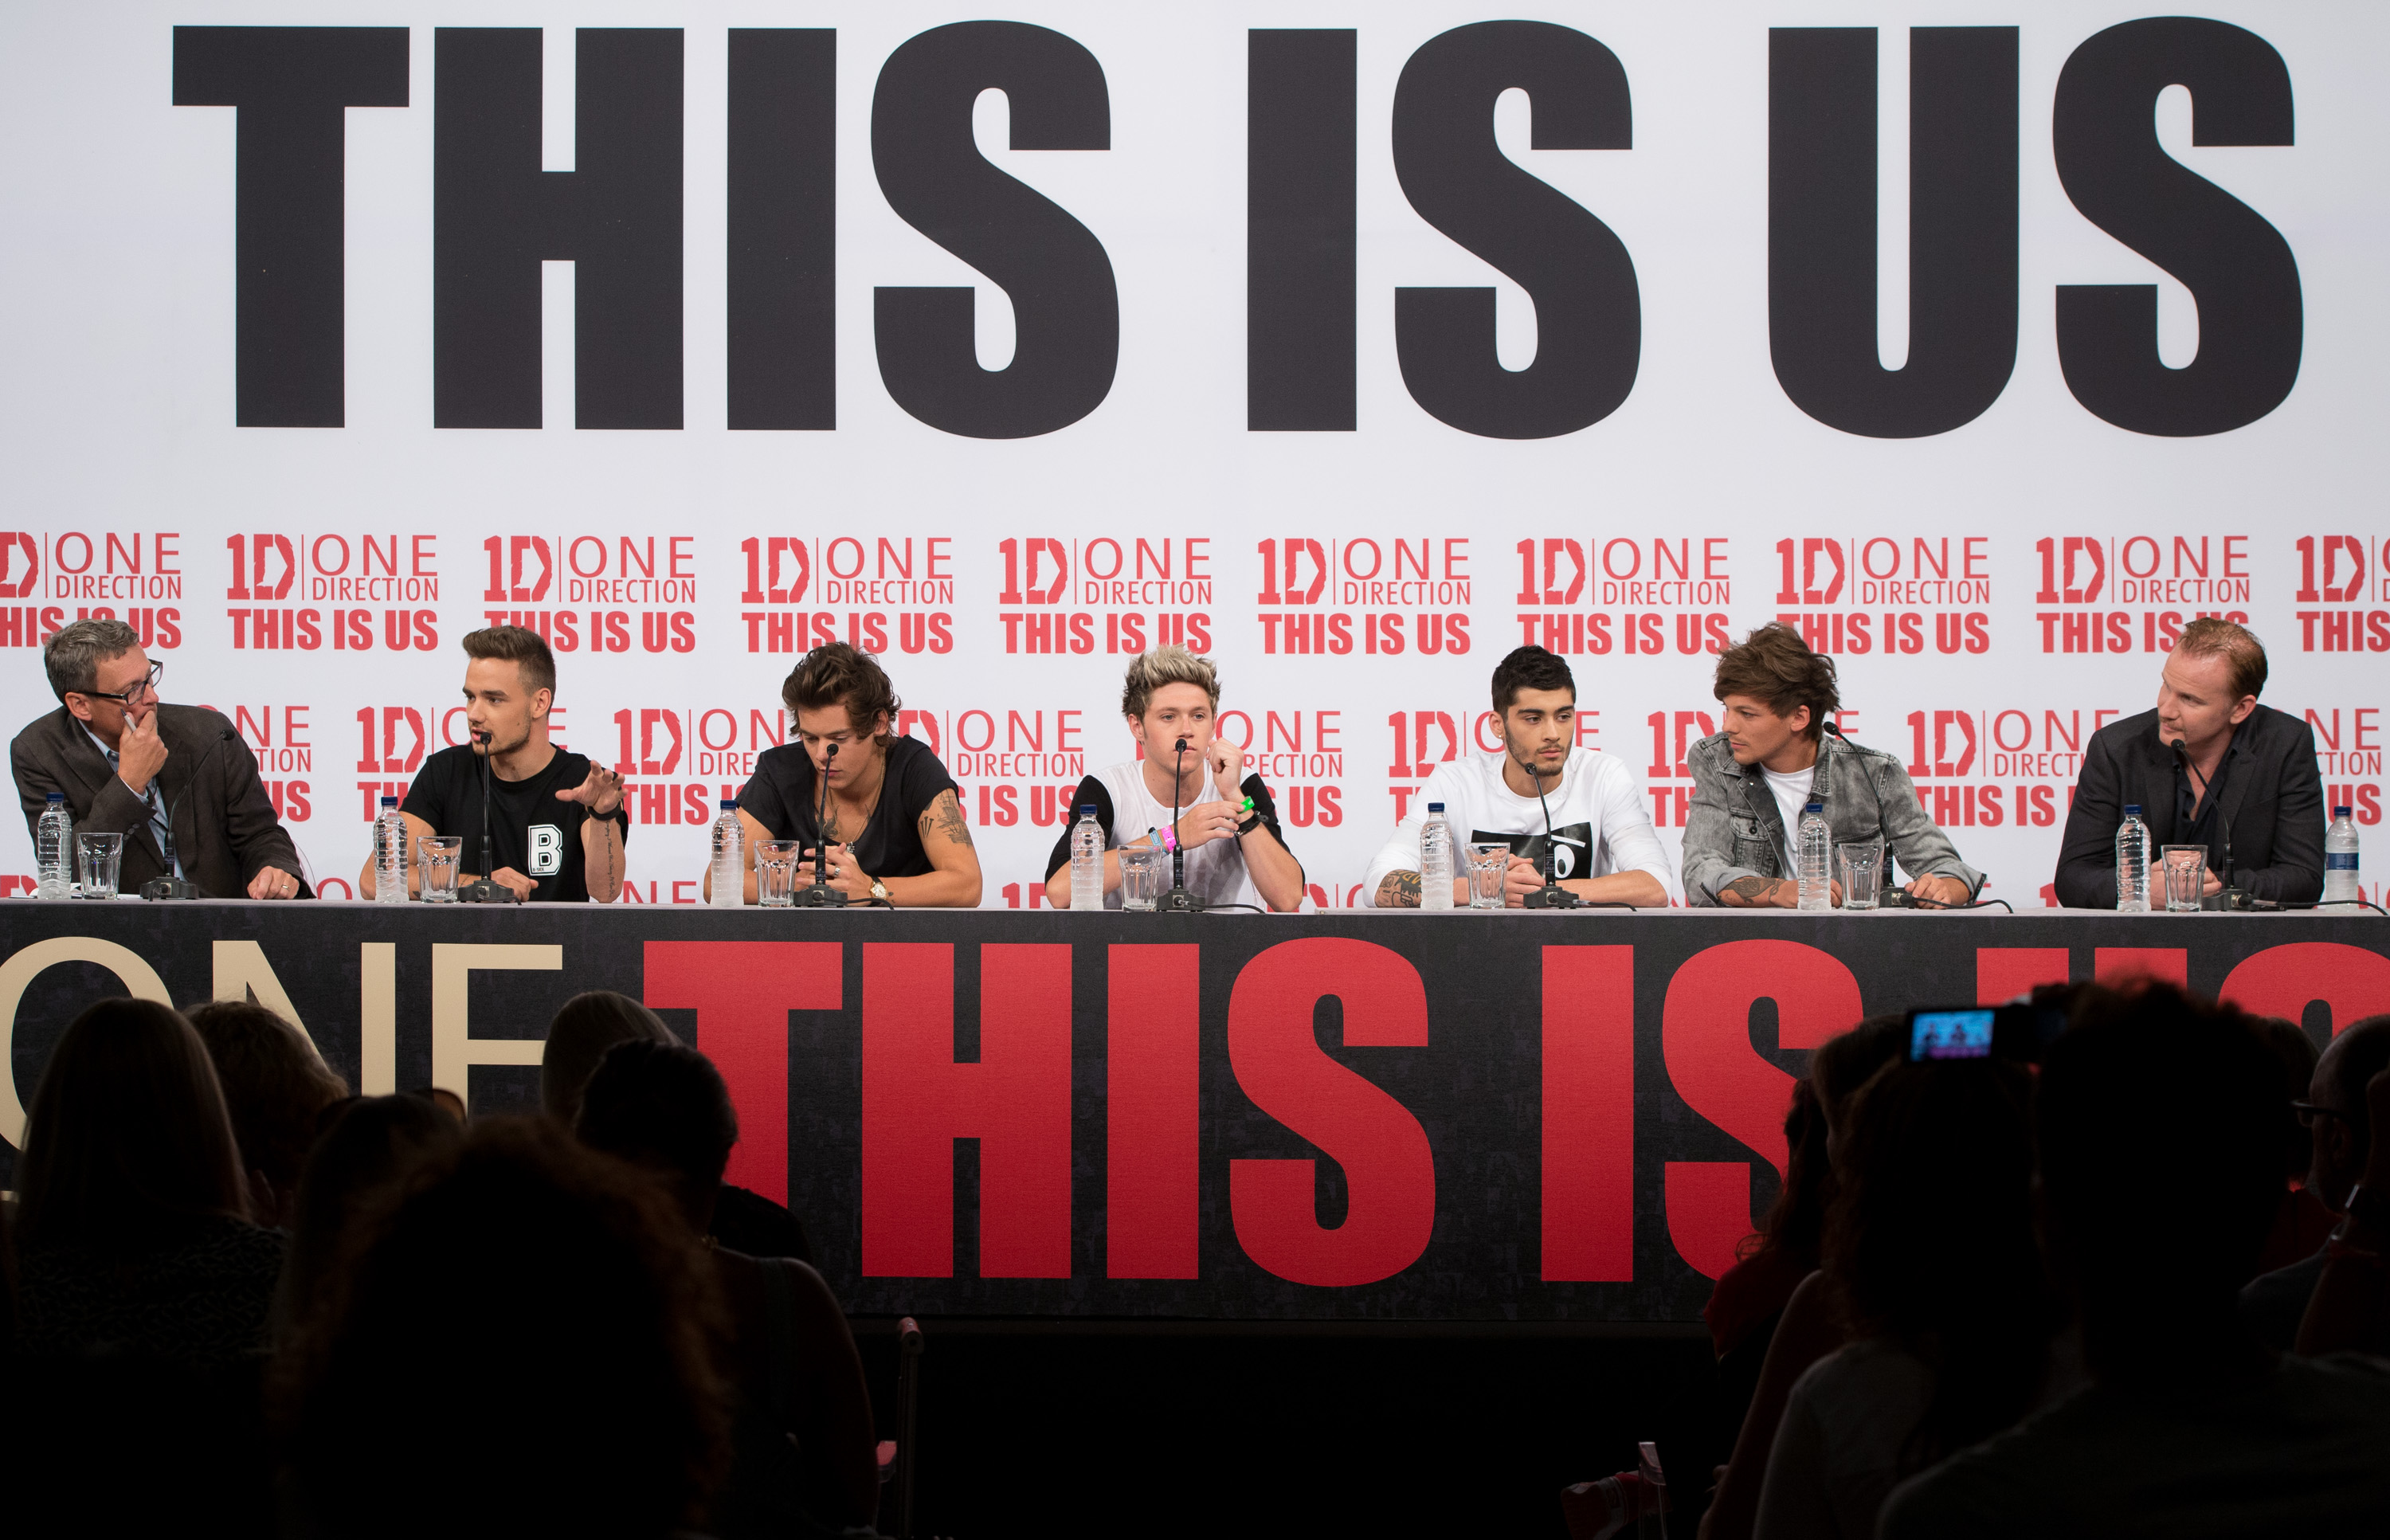 'One Direction - This Is Us' Photo Call And Press Conference